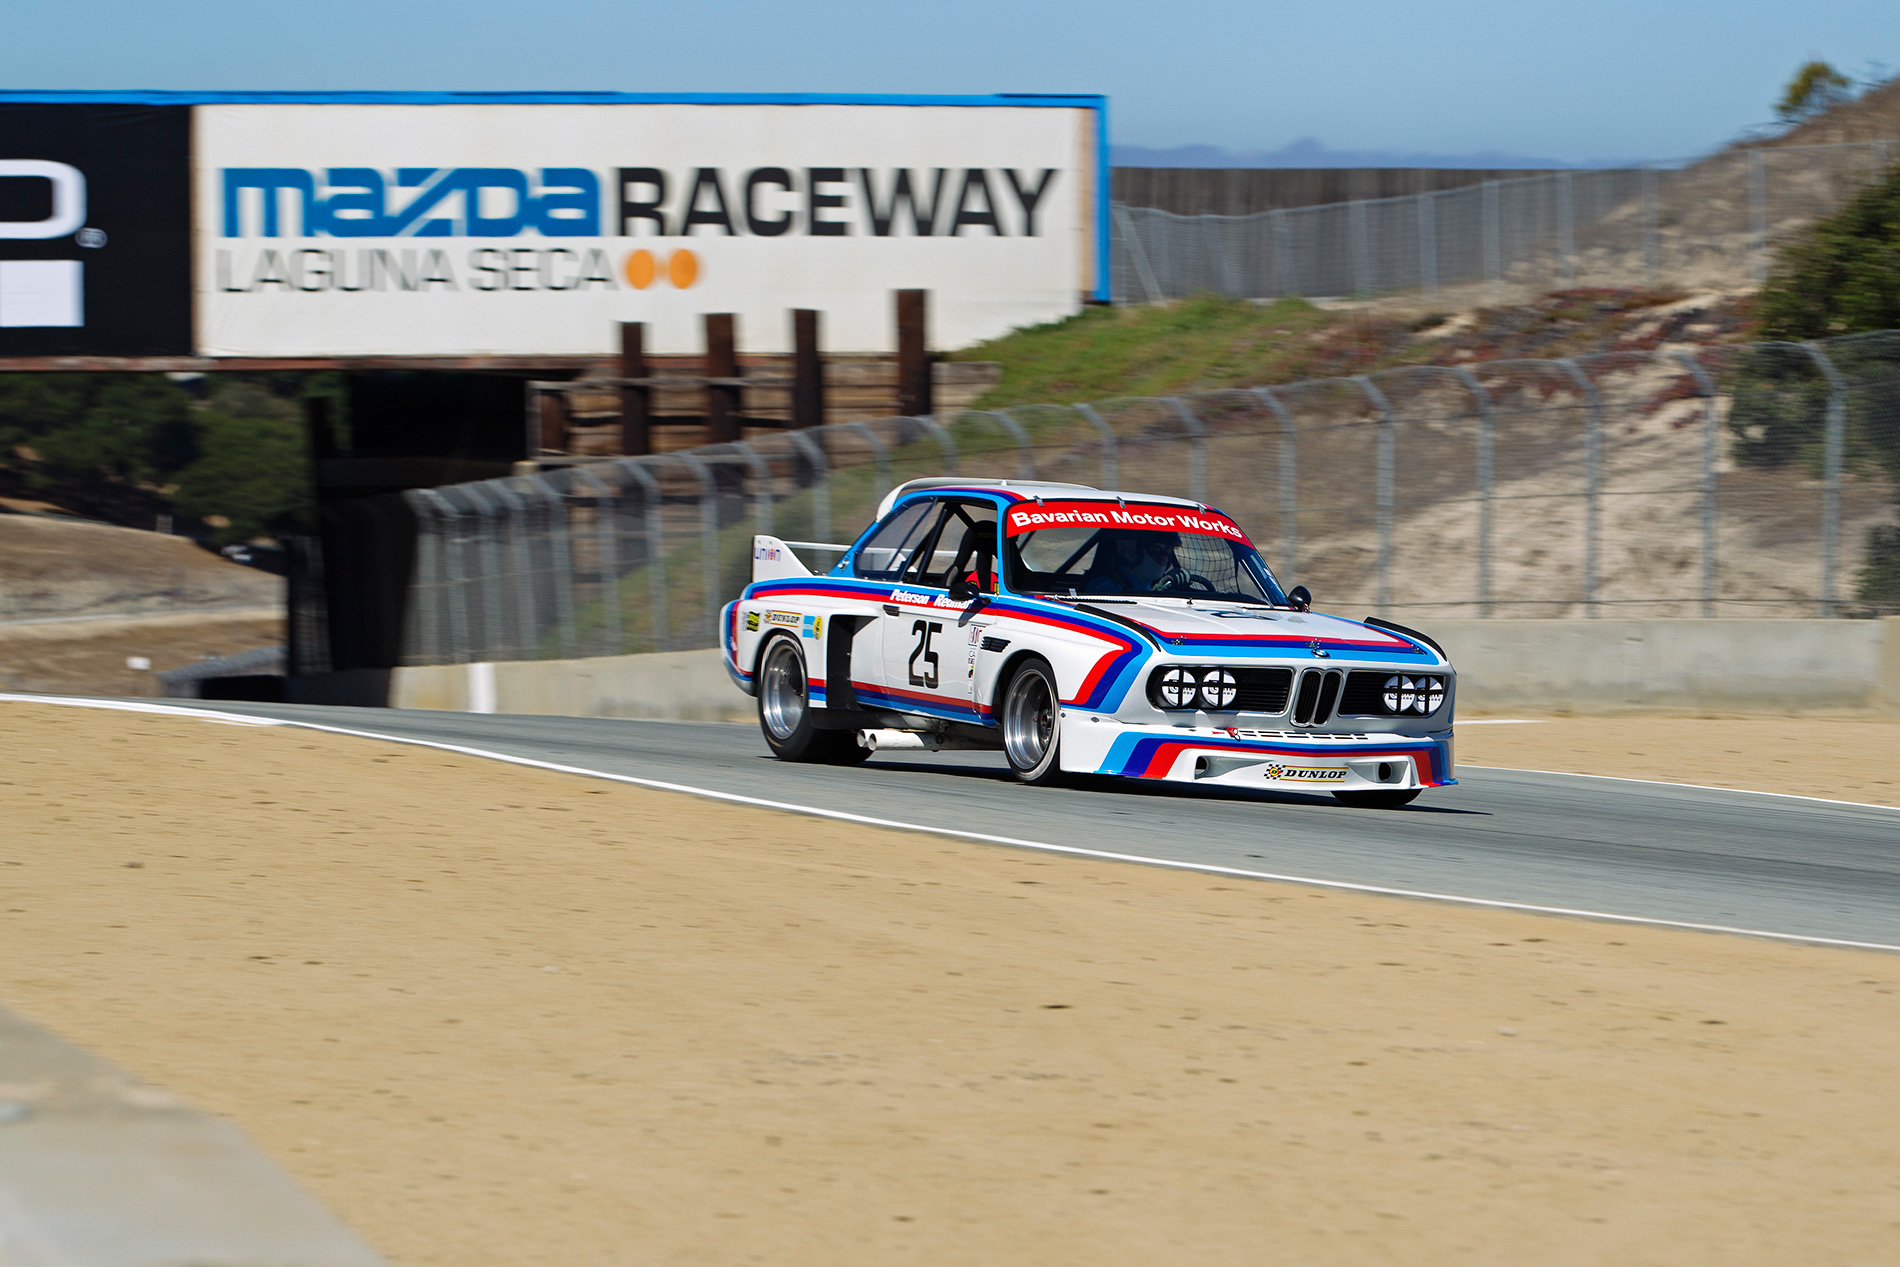 1975 BMW 3.0 CSL IMSA Group 4 No. 25